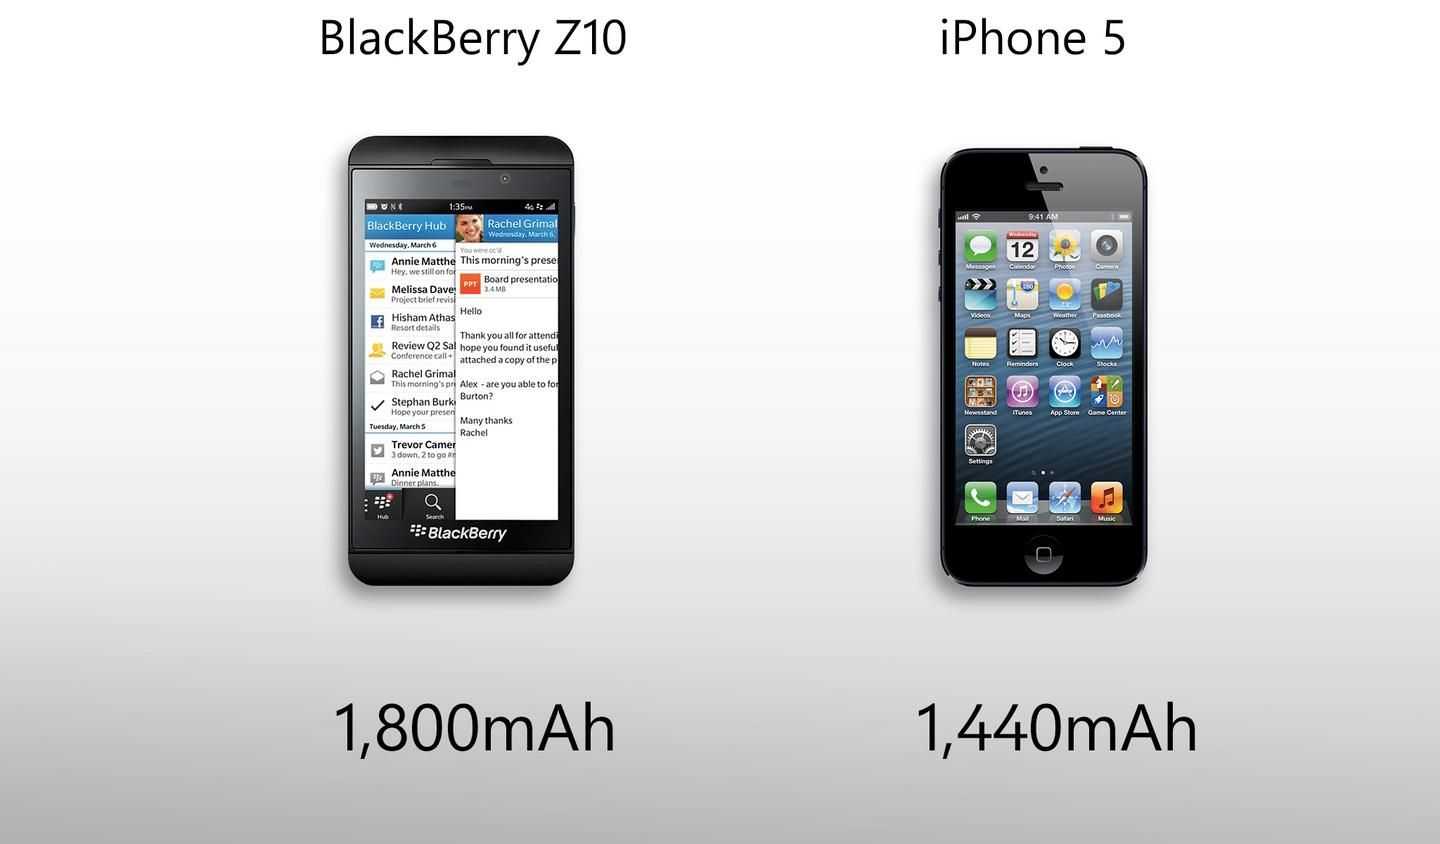 The Z10 has a higher-capacity battery